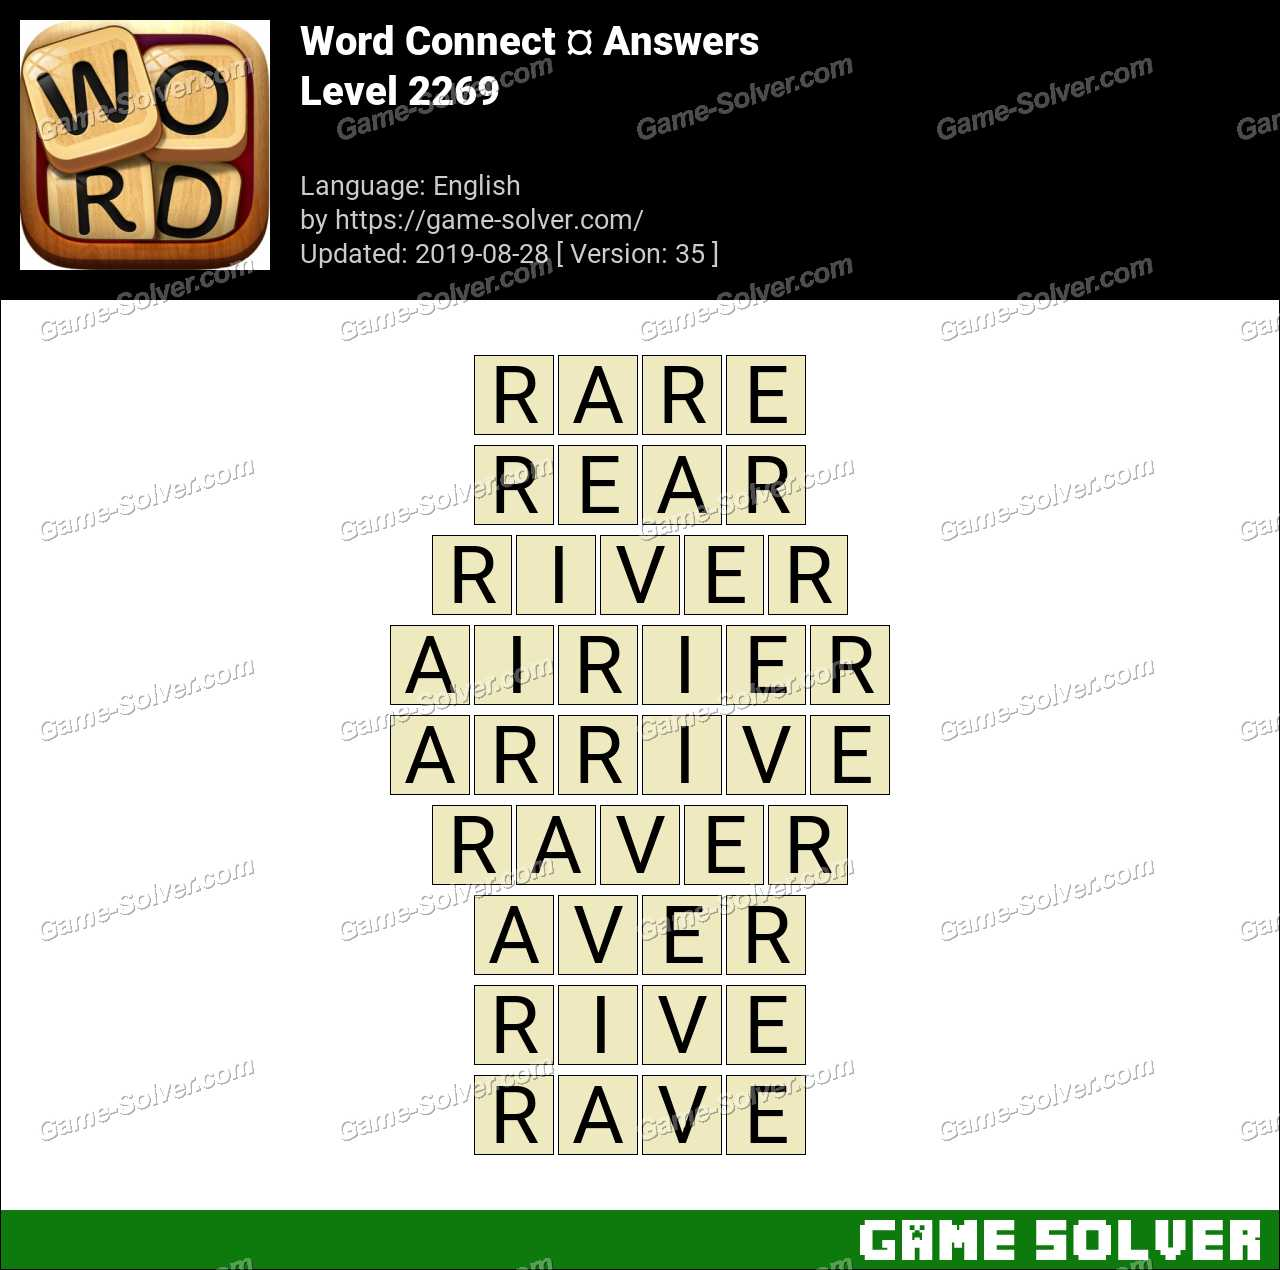 Word Connect Level 2269 Answers